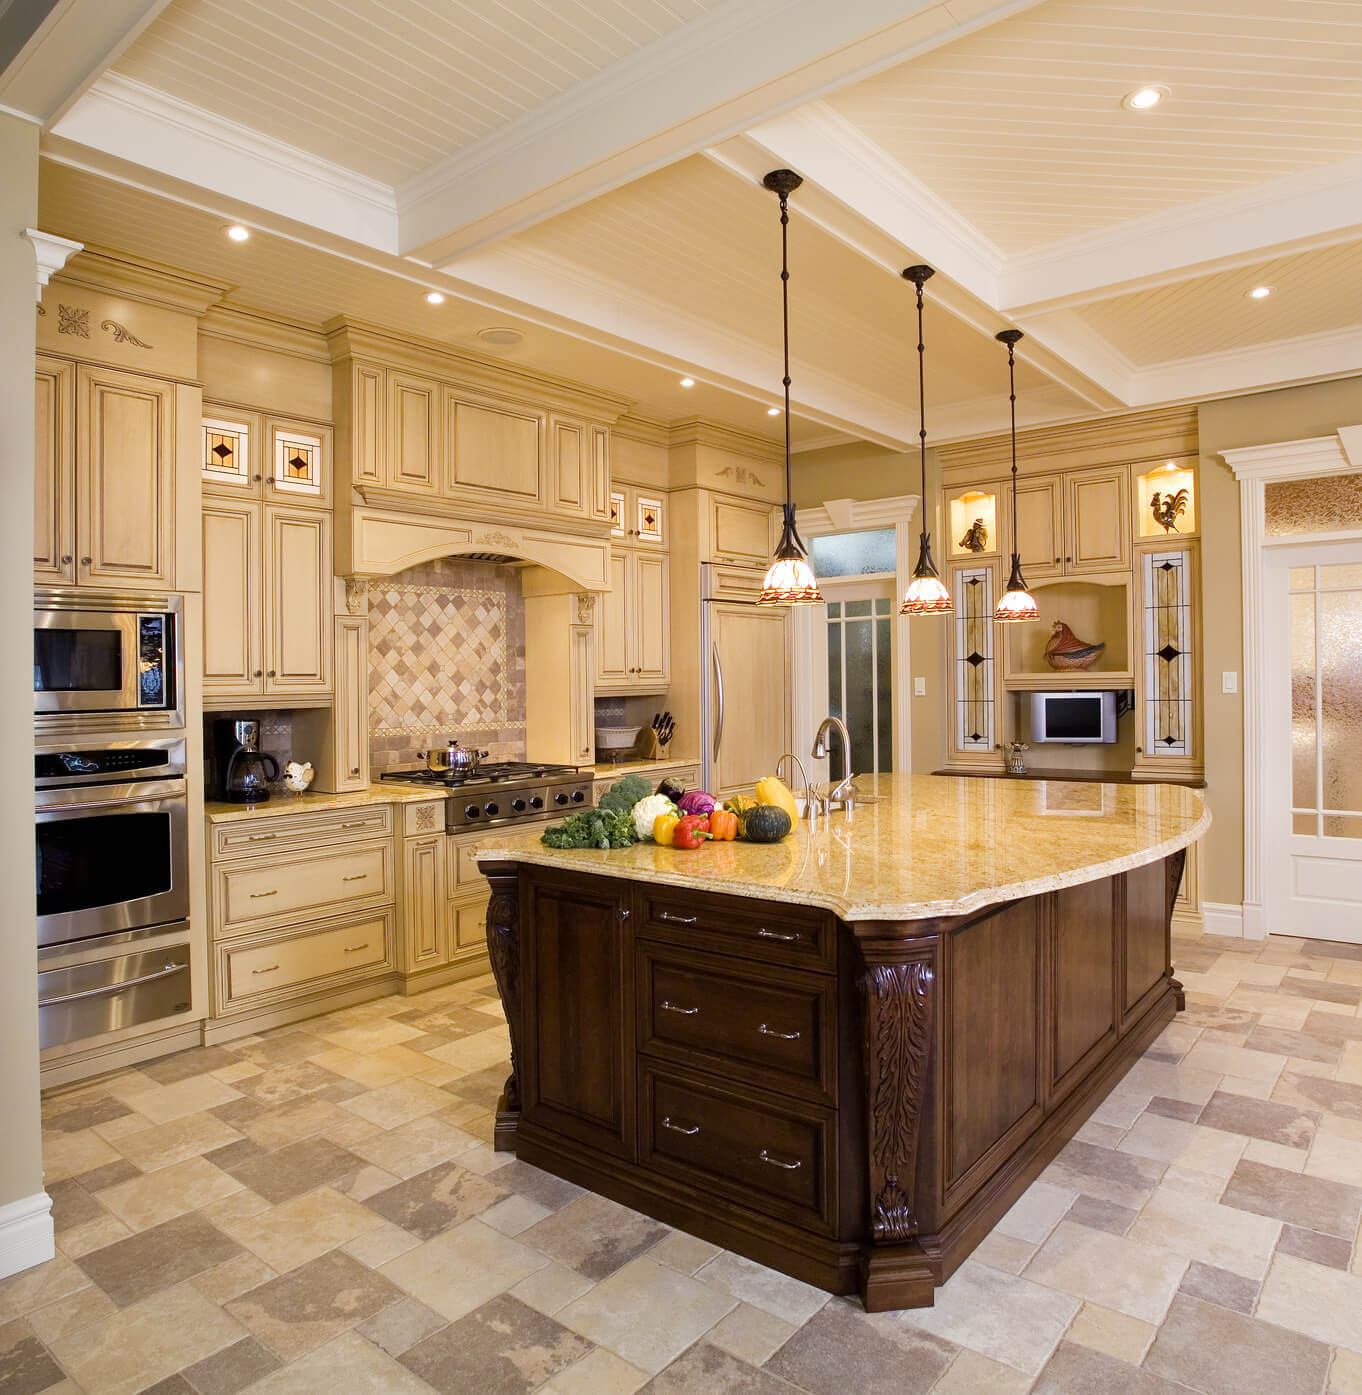 A high–end kitchen design in cream hue is always a great choice. Beige stone granite countertops look fantabulous and are nicely combined with luxury kitchen floor tiles and other cabinets painted in cream